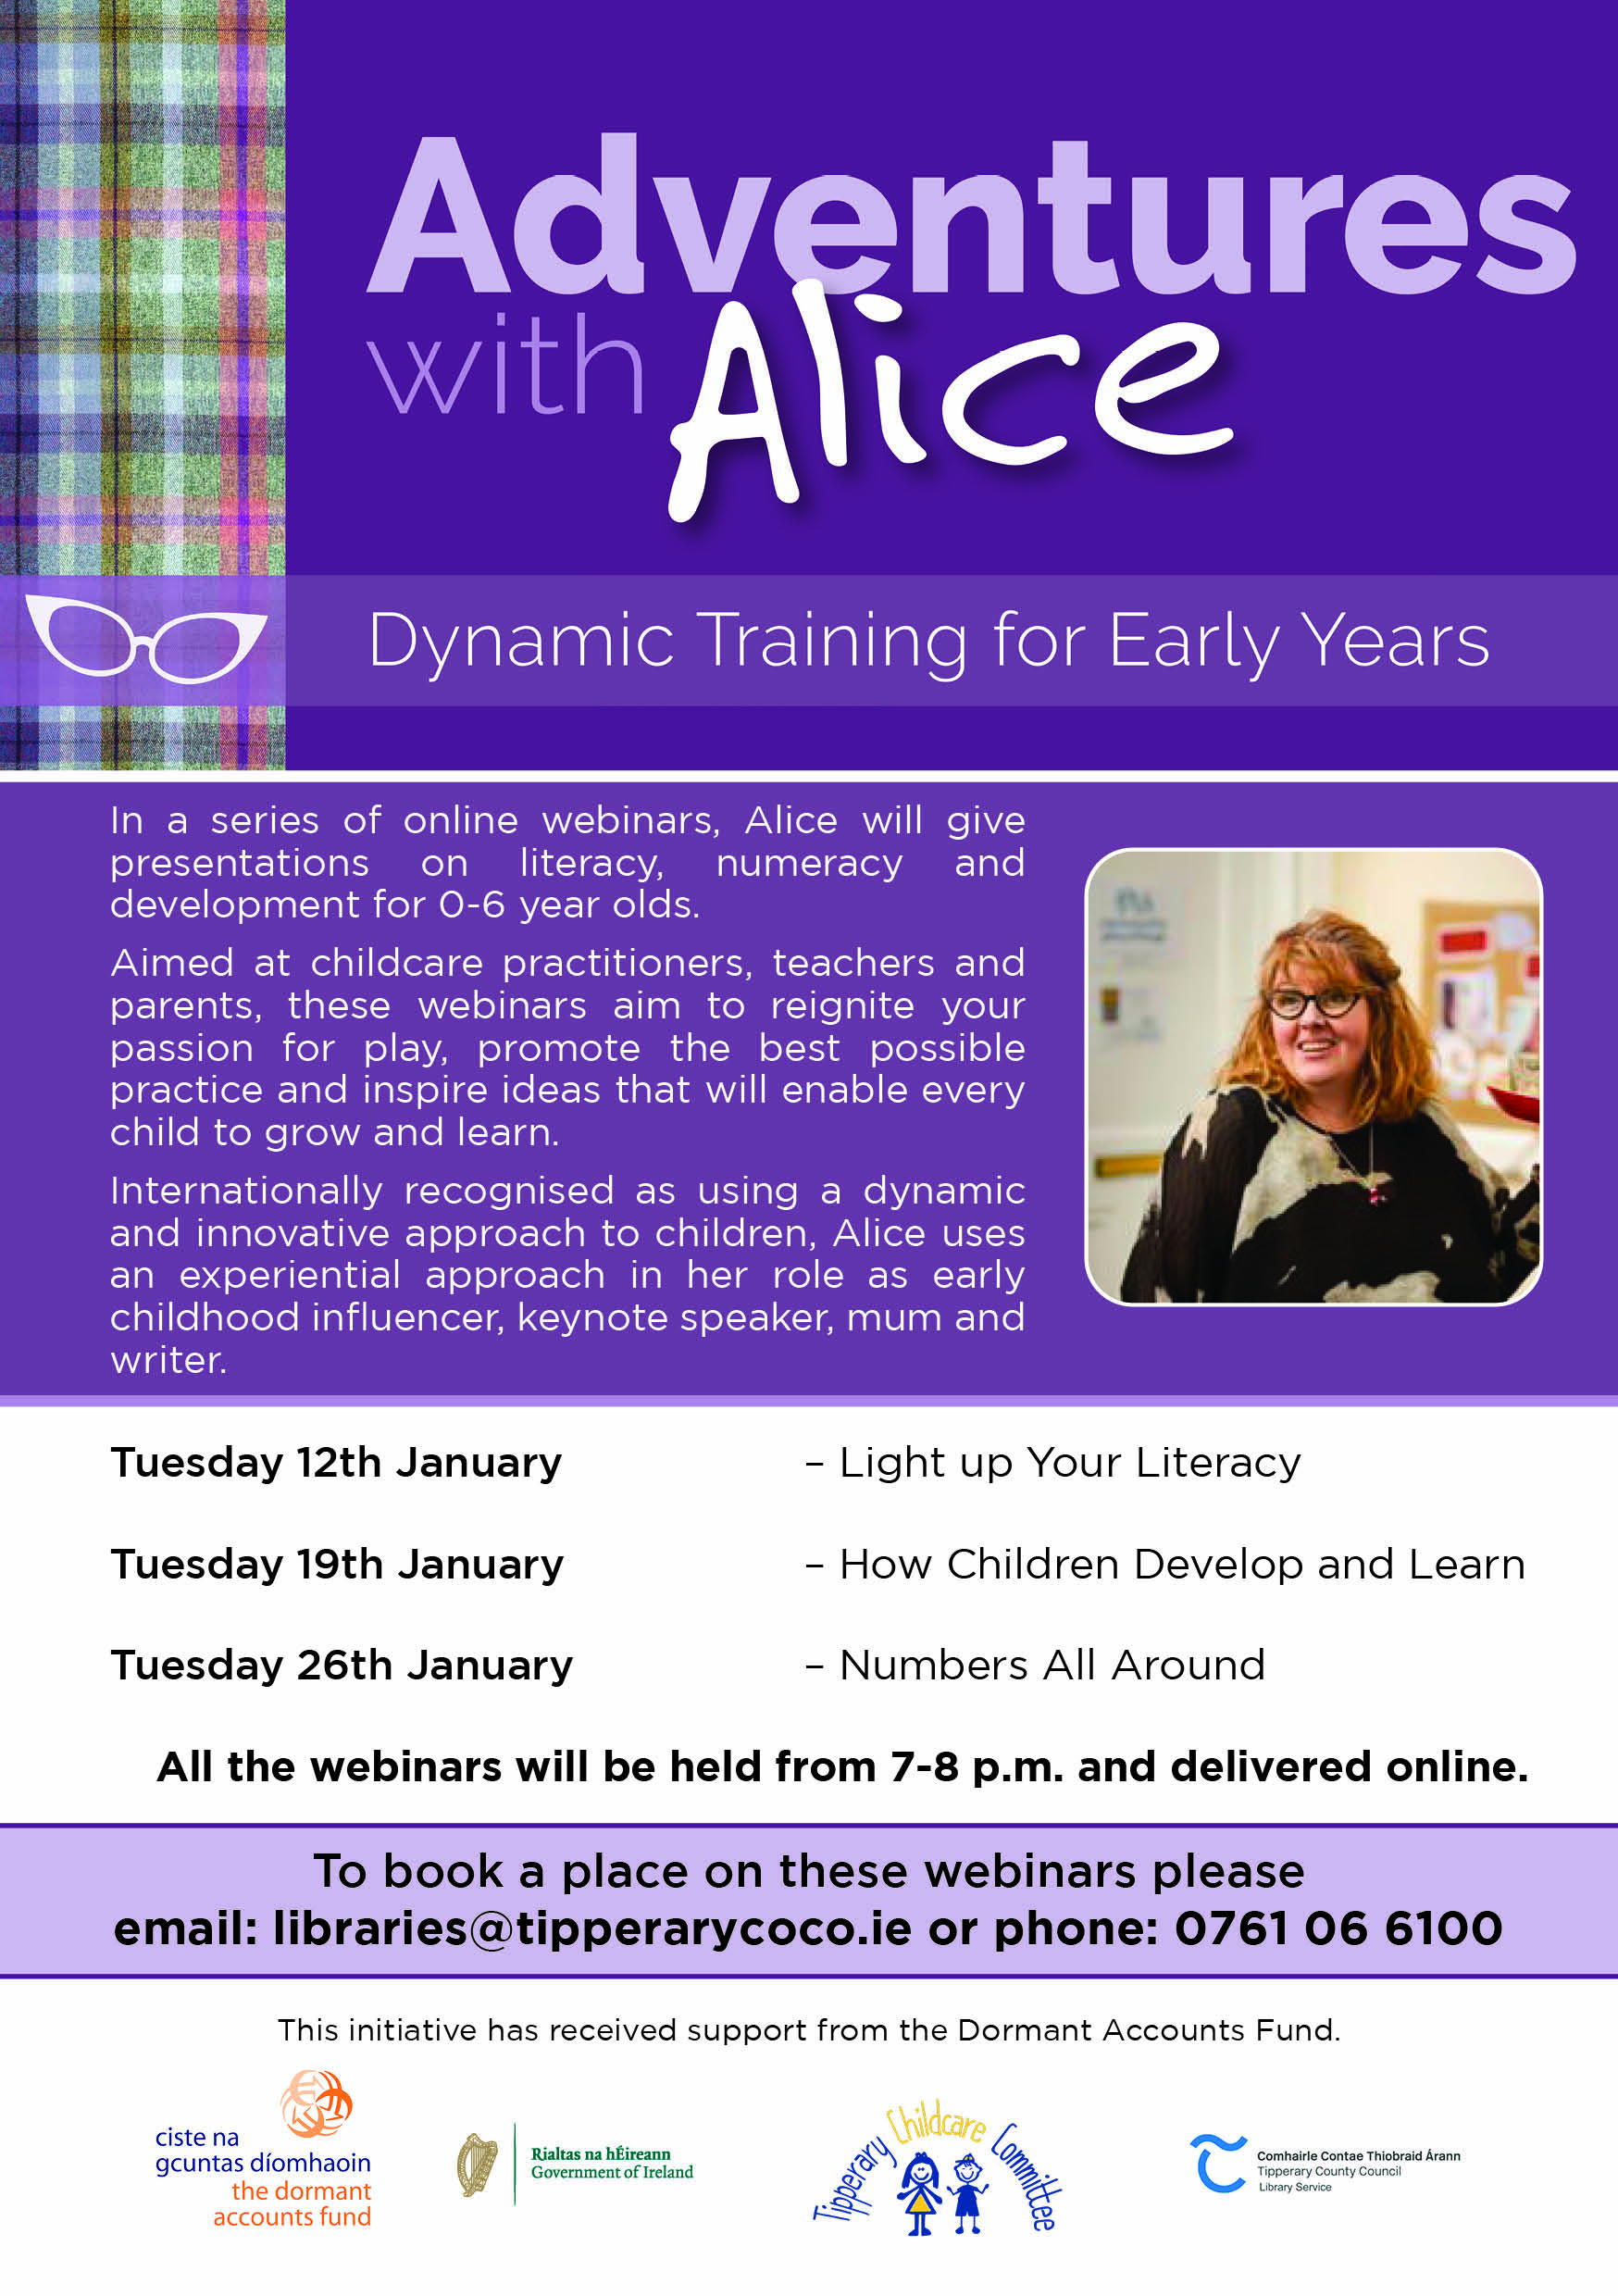 Dynamic Training For Early Years Educators With Internationally Renowned  Alice Sharp